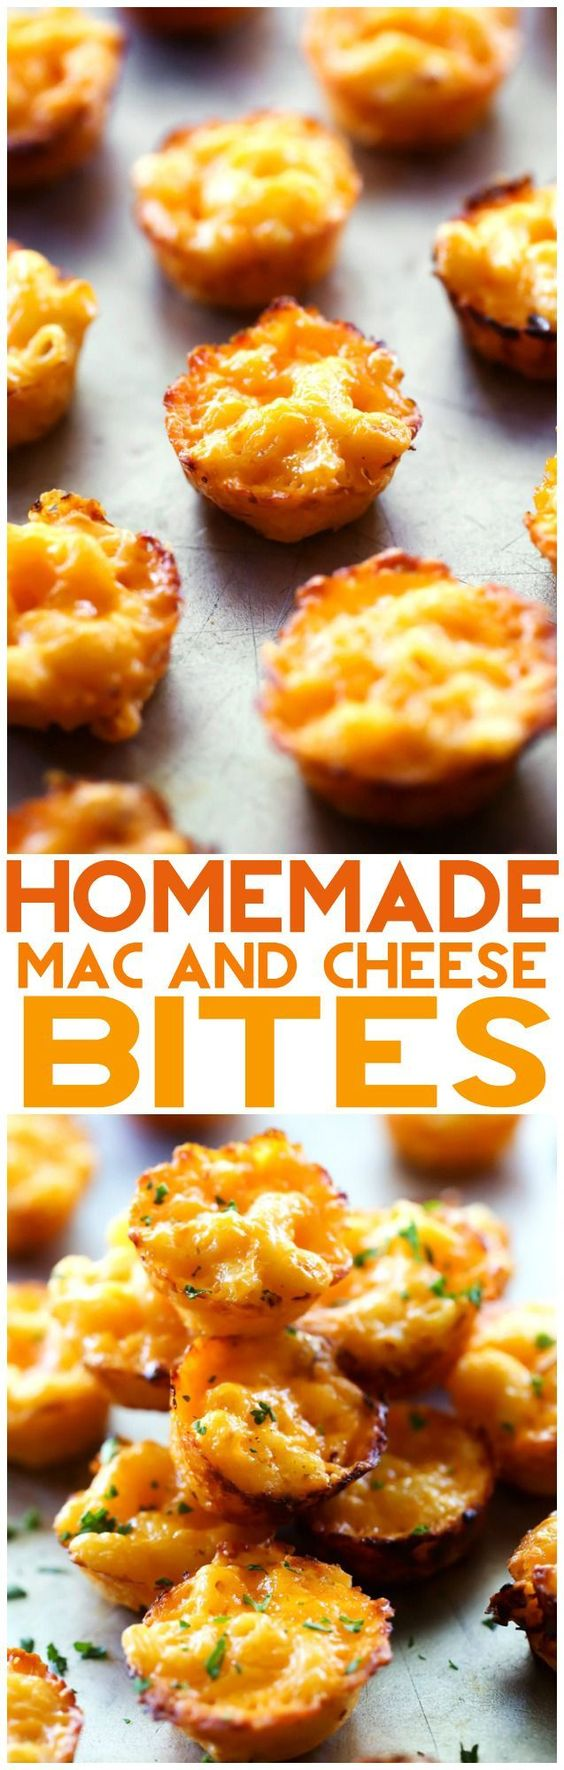 Homemade Mac and Cheese Bites... These are so simple and the perfect finger food ideal for serving kids and as an appetizer! These are DELICIOUS! via Chef in Training